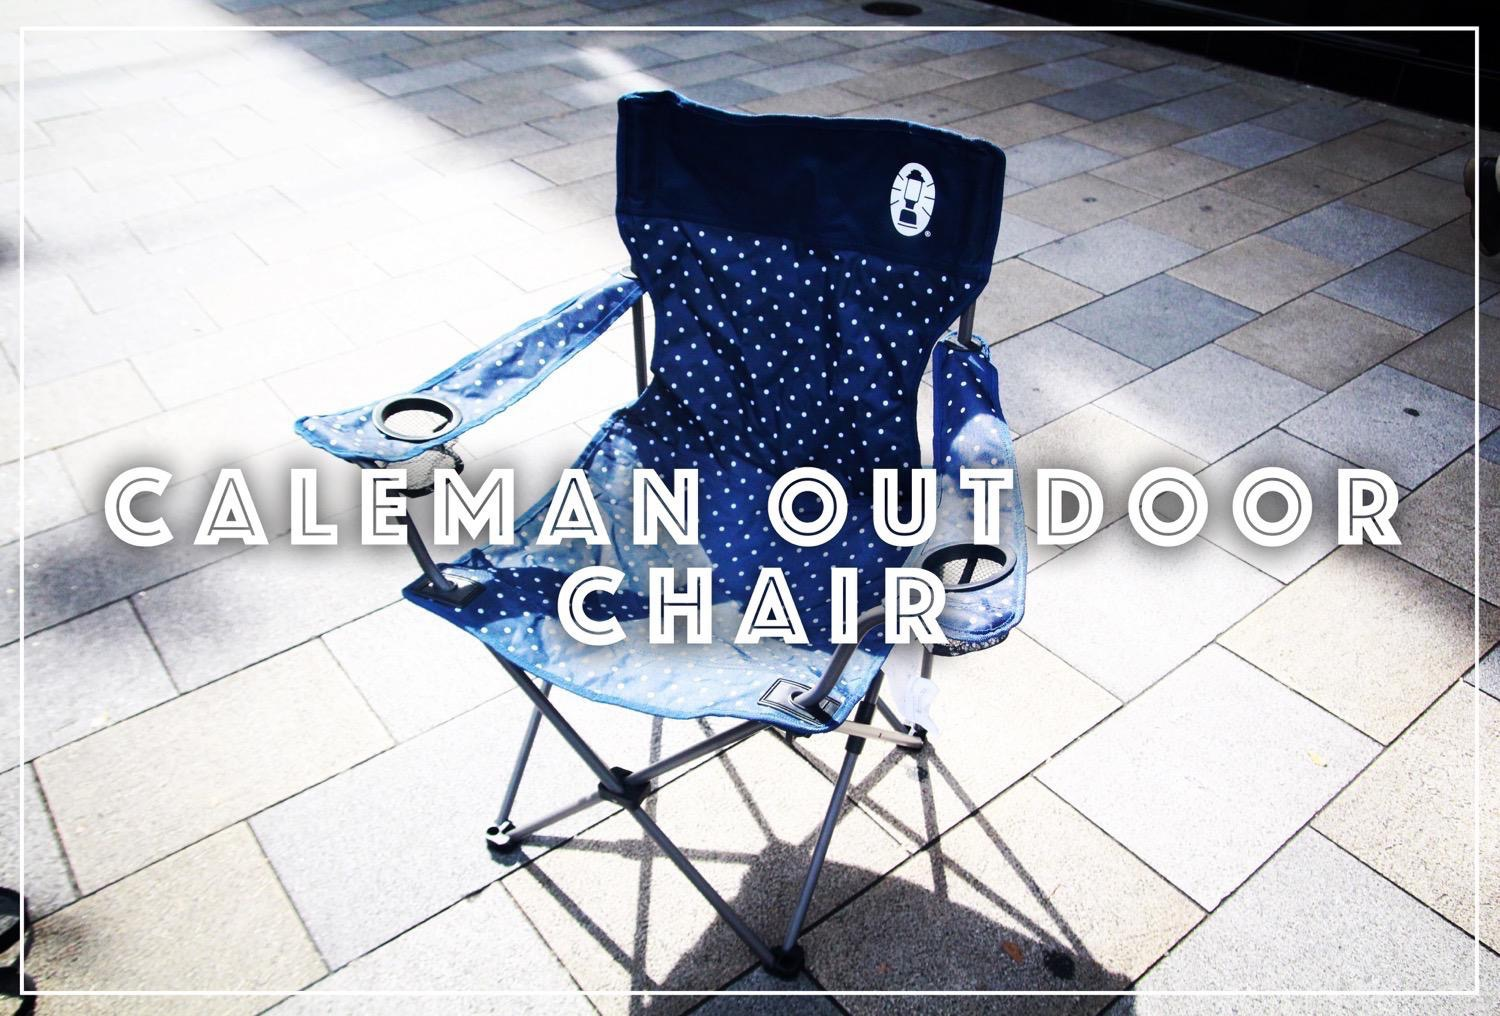 Caleman outdoor chair7